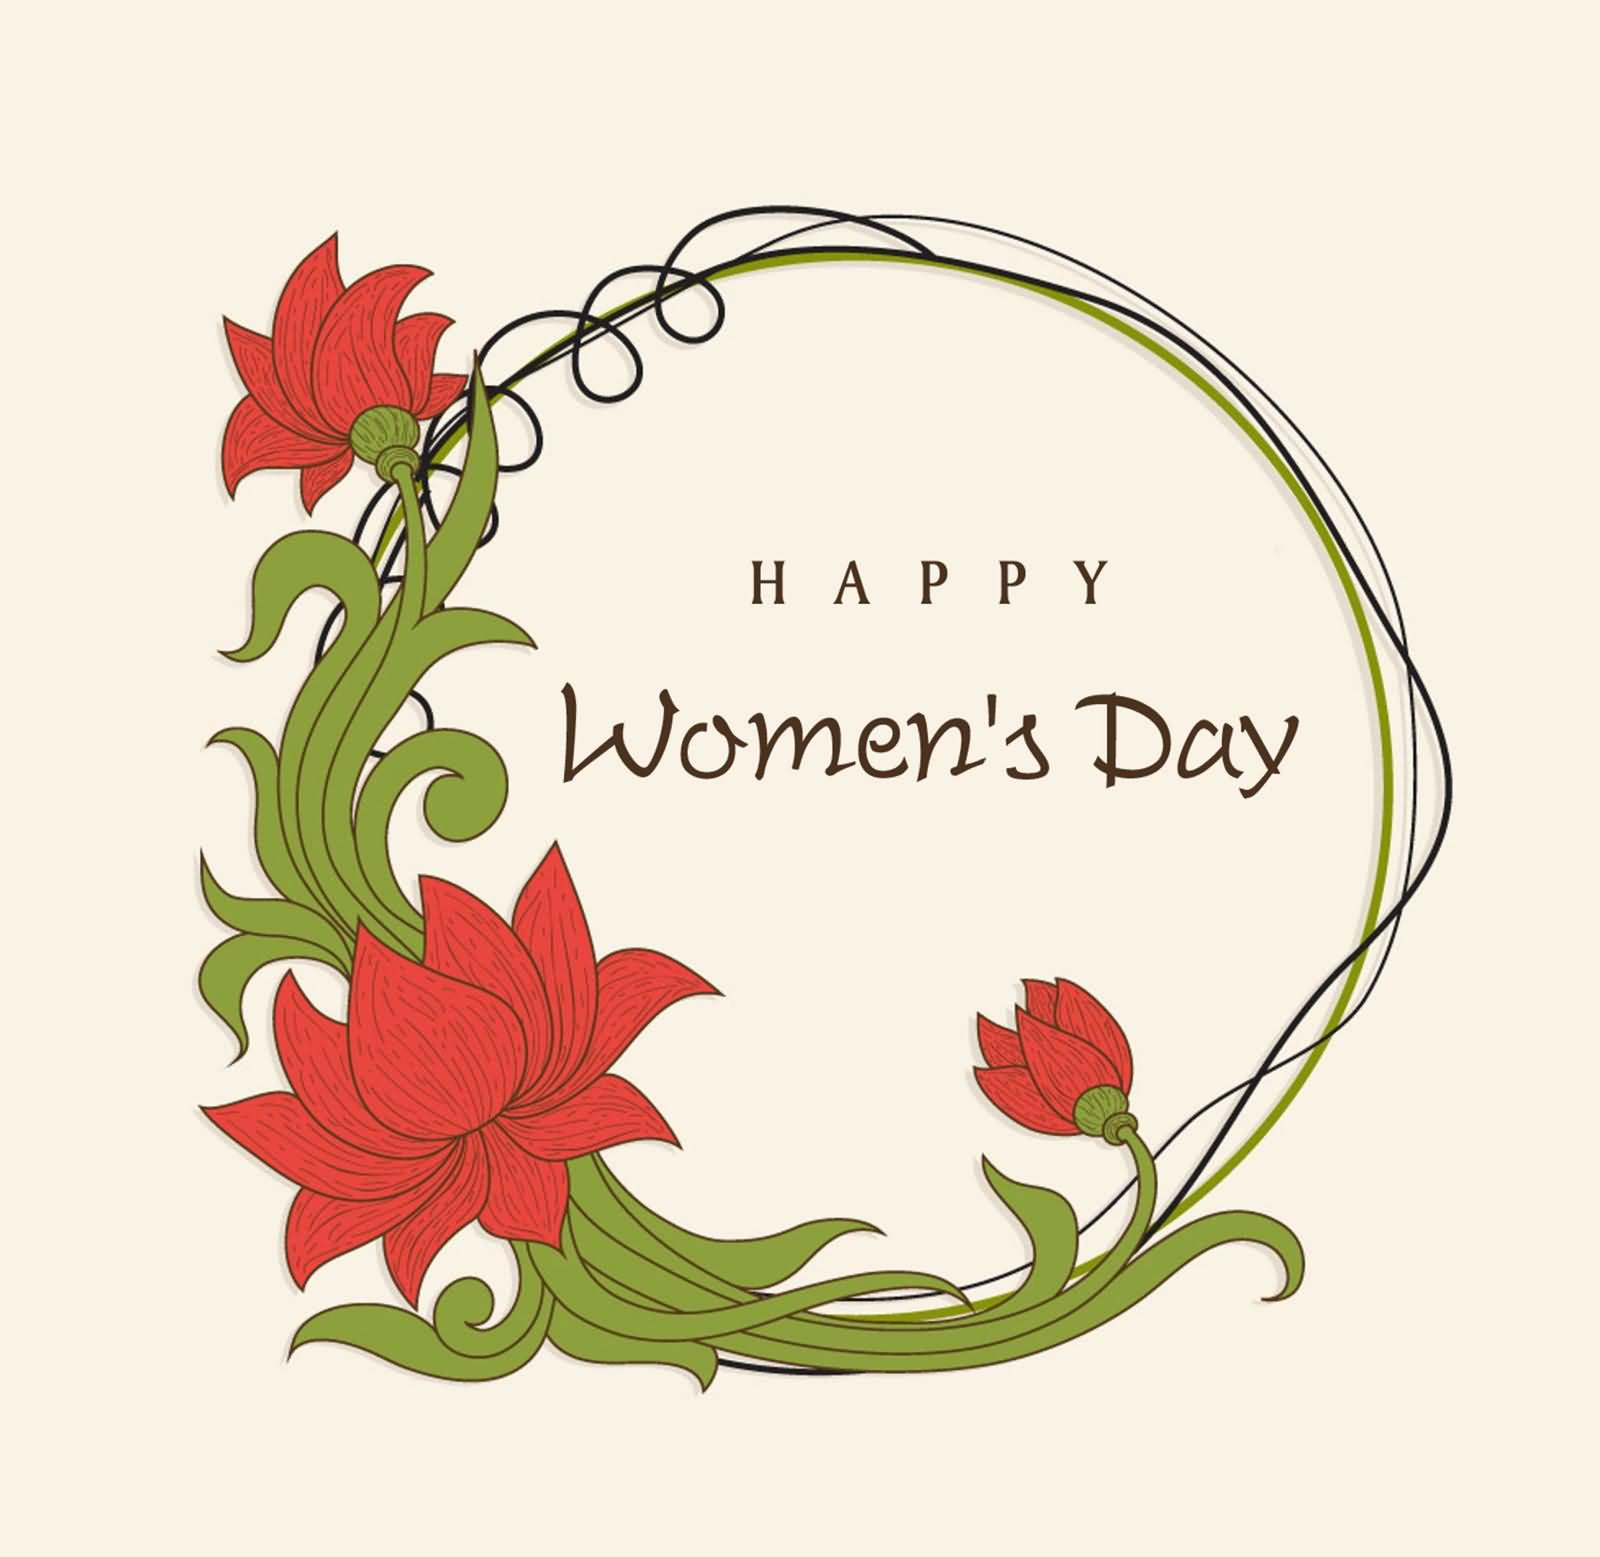 Mother Wish you Happy Women's Day Image